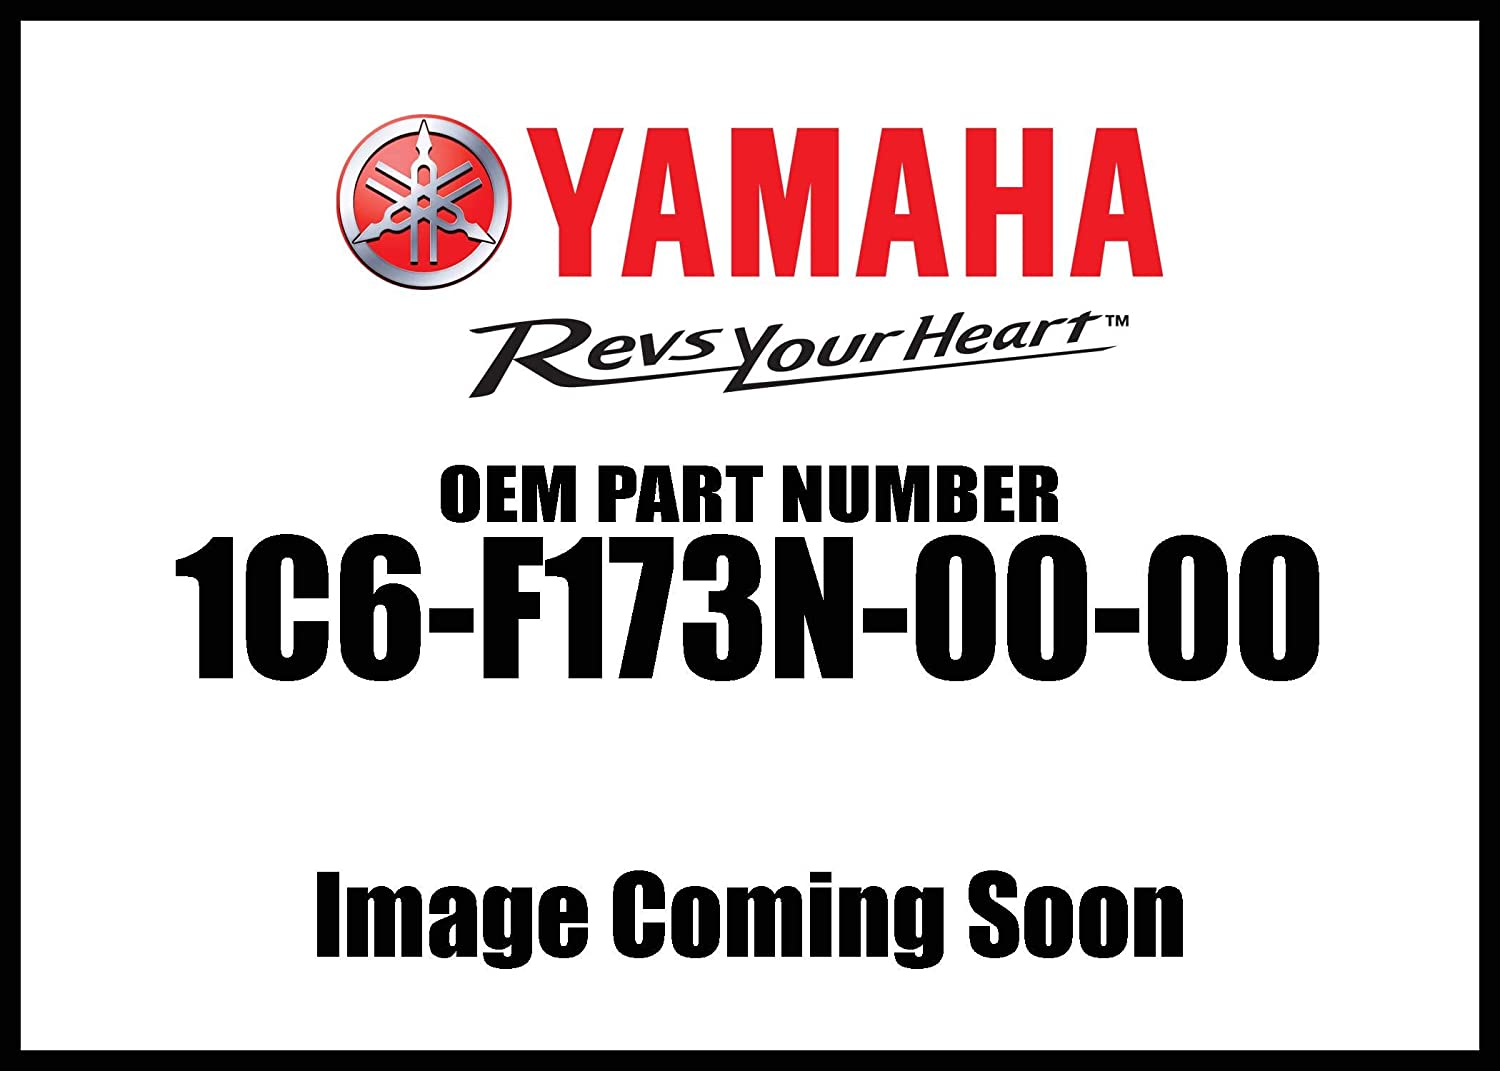 Yamaha 1C6-F173N-00-00 Seal 4; 1C6F173N0000 Made by Yamaha